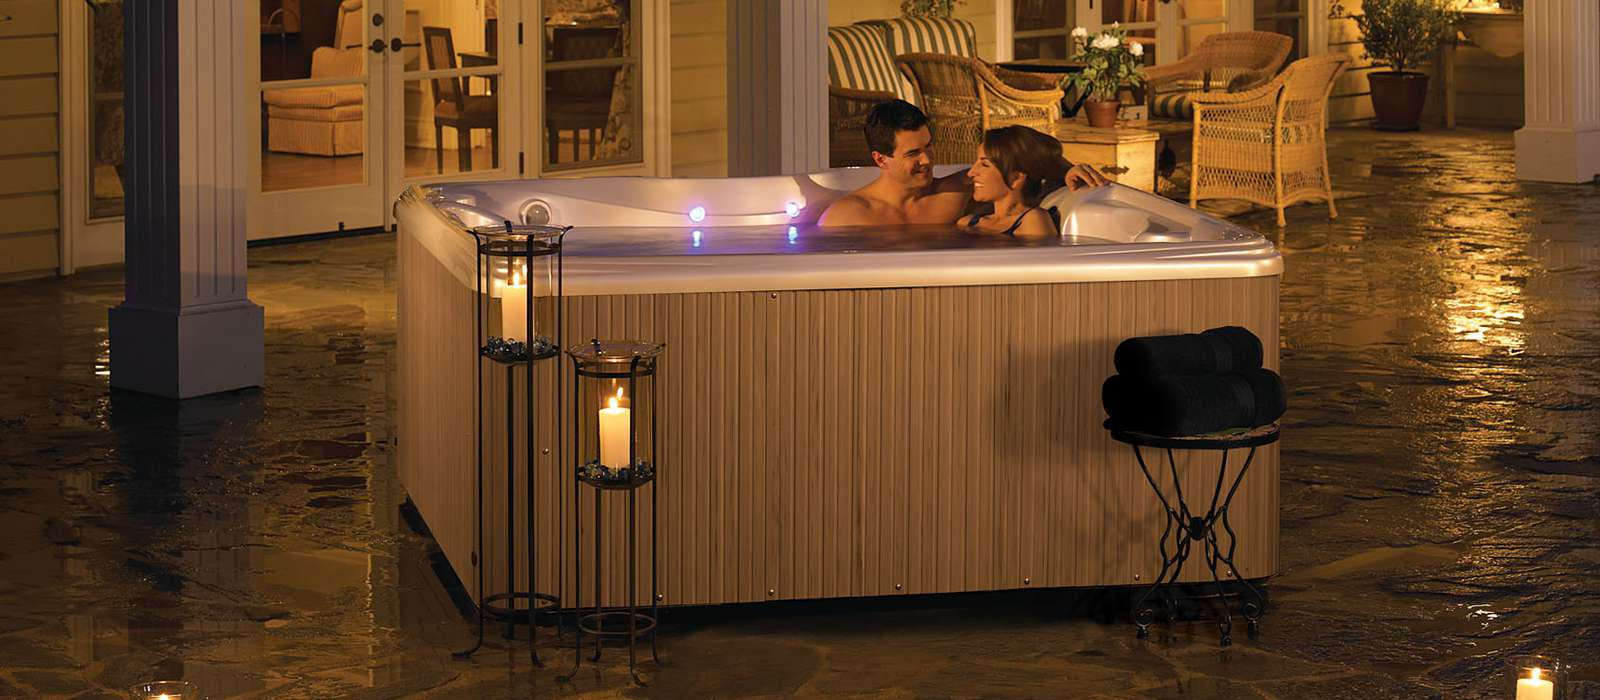 Enhance your spa experience with the Relay's multi-color LED lighting system and therapeutic waterfall. Add an optional wireless TV and sound system to watch your favorite shows and listen to music while you soak.